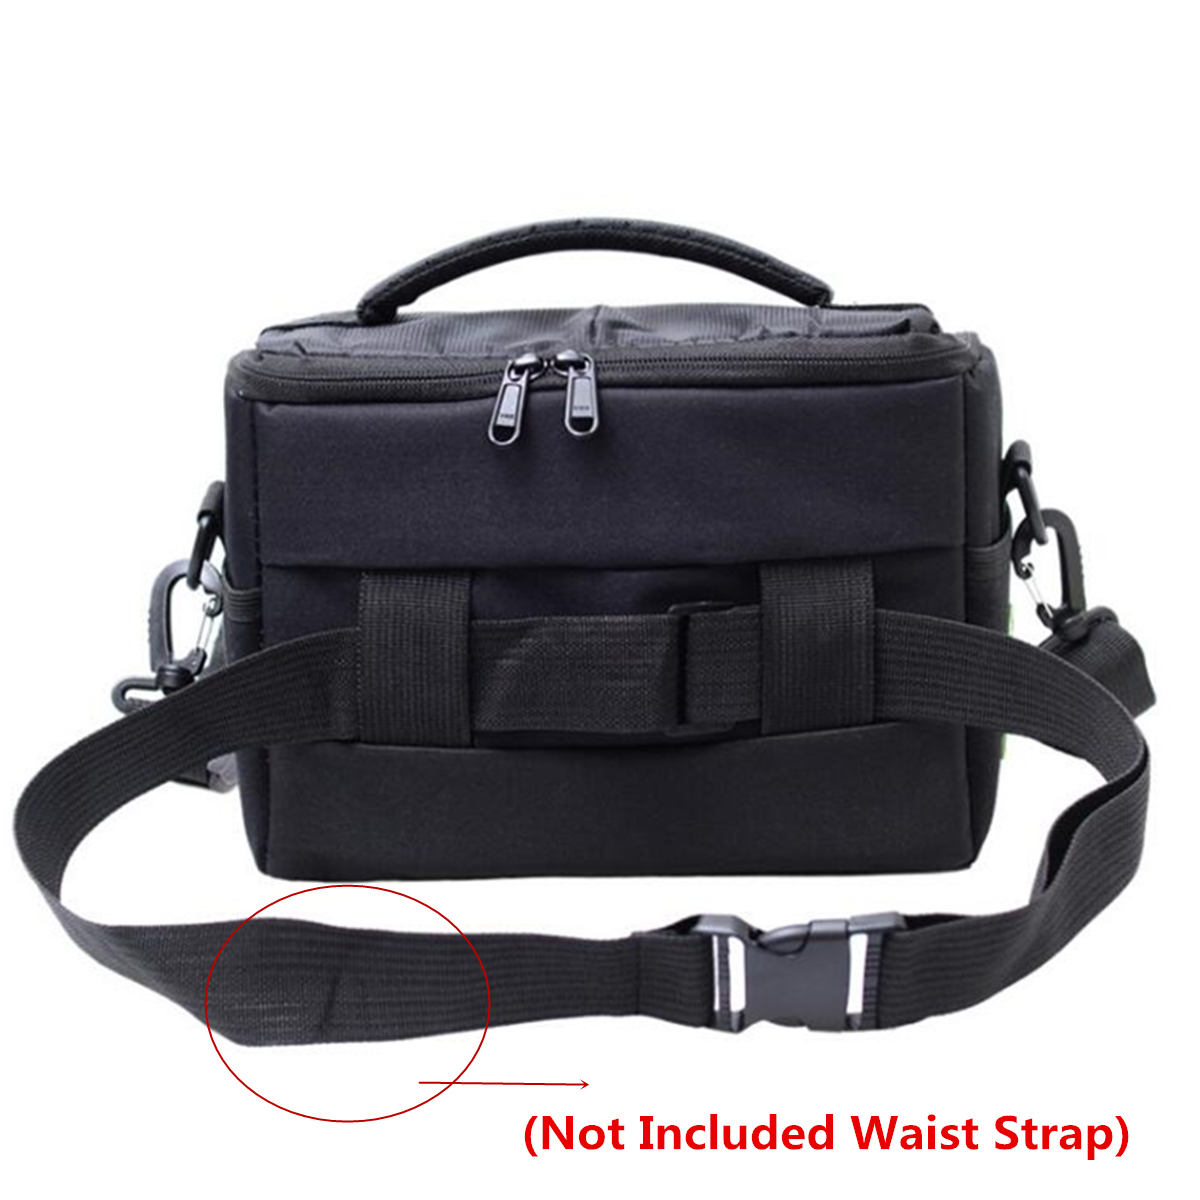 Outdoor Travel SLR Camera Storage Bag Shoulder Messenger Bag Crossbody Bag For Nikon D3200 D3100